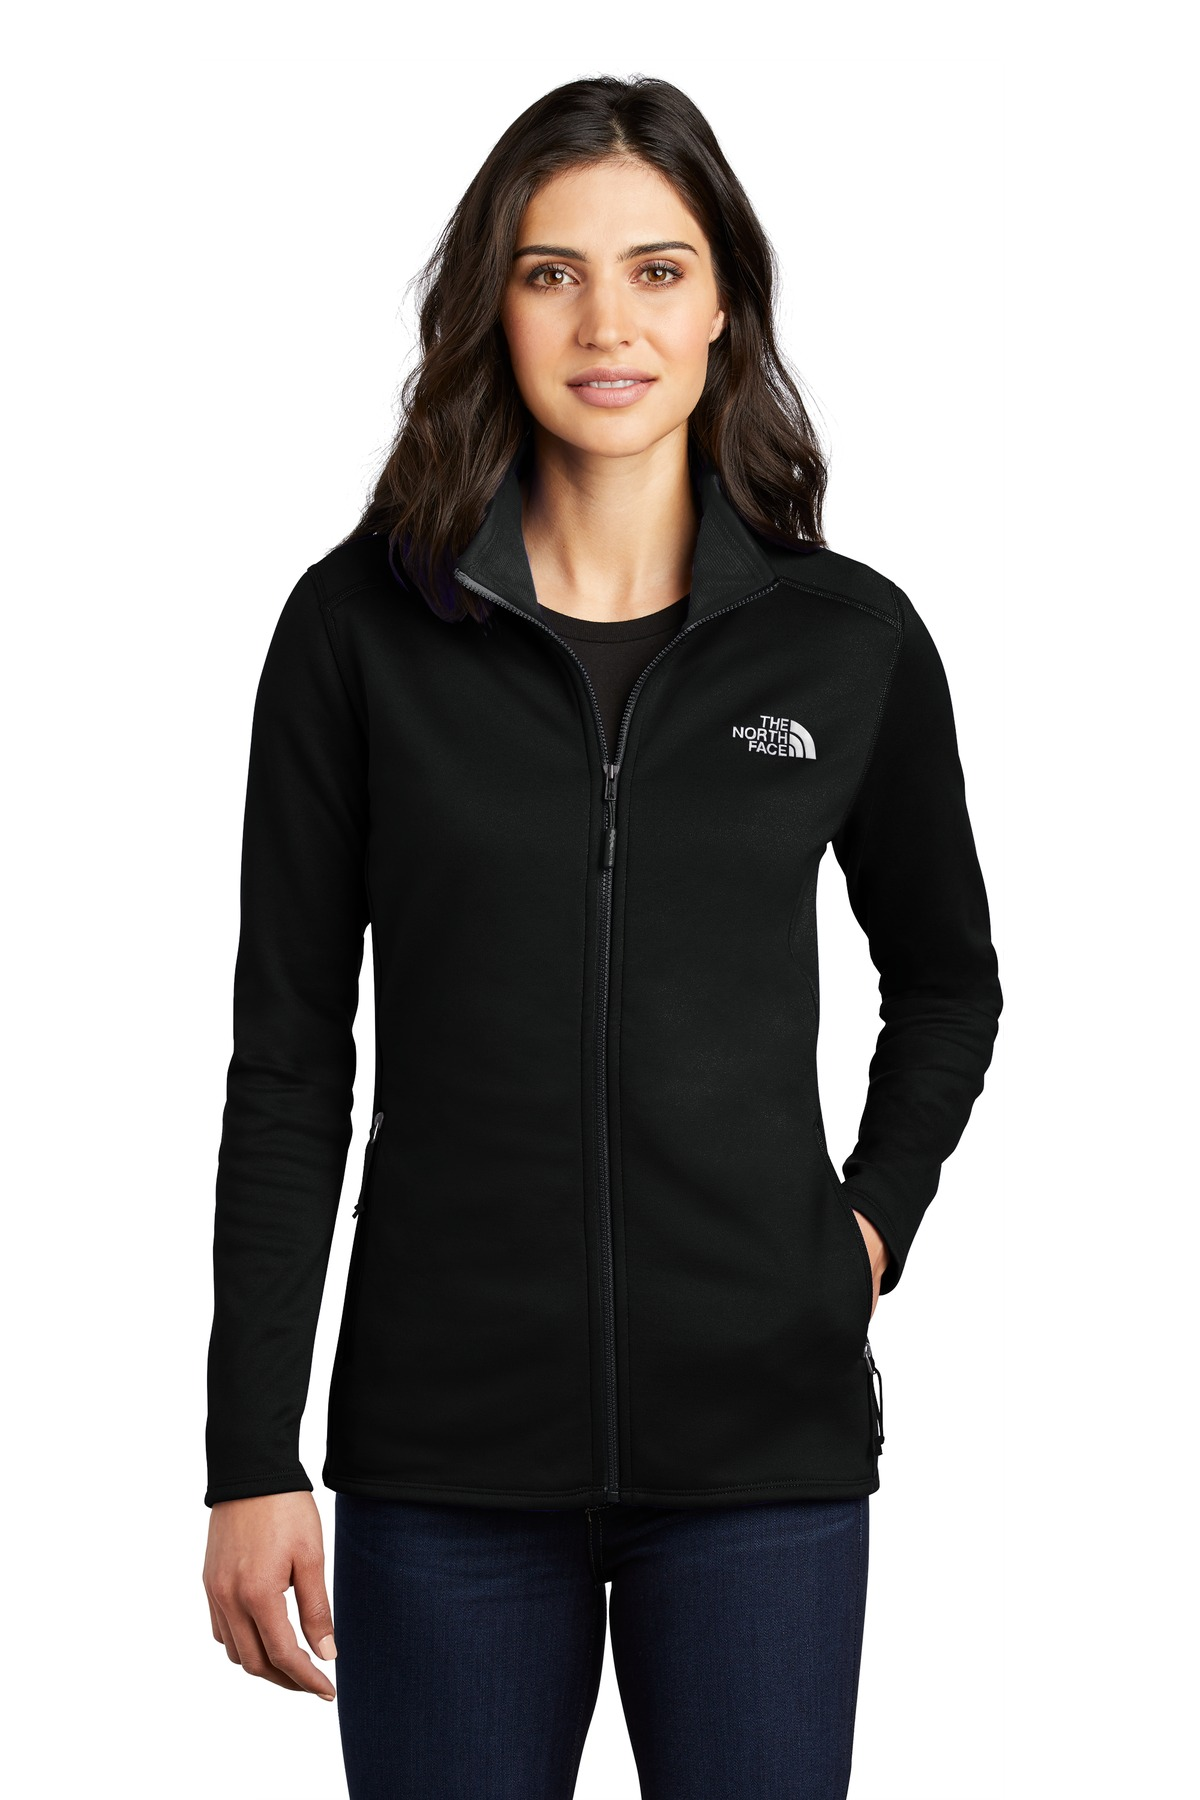 The North Face  ®  Ladies Skyline Full-Zip Fleece Jacket NF0A47F6 - TNF Black